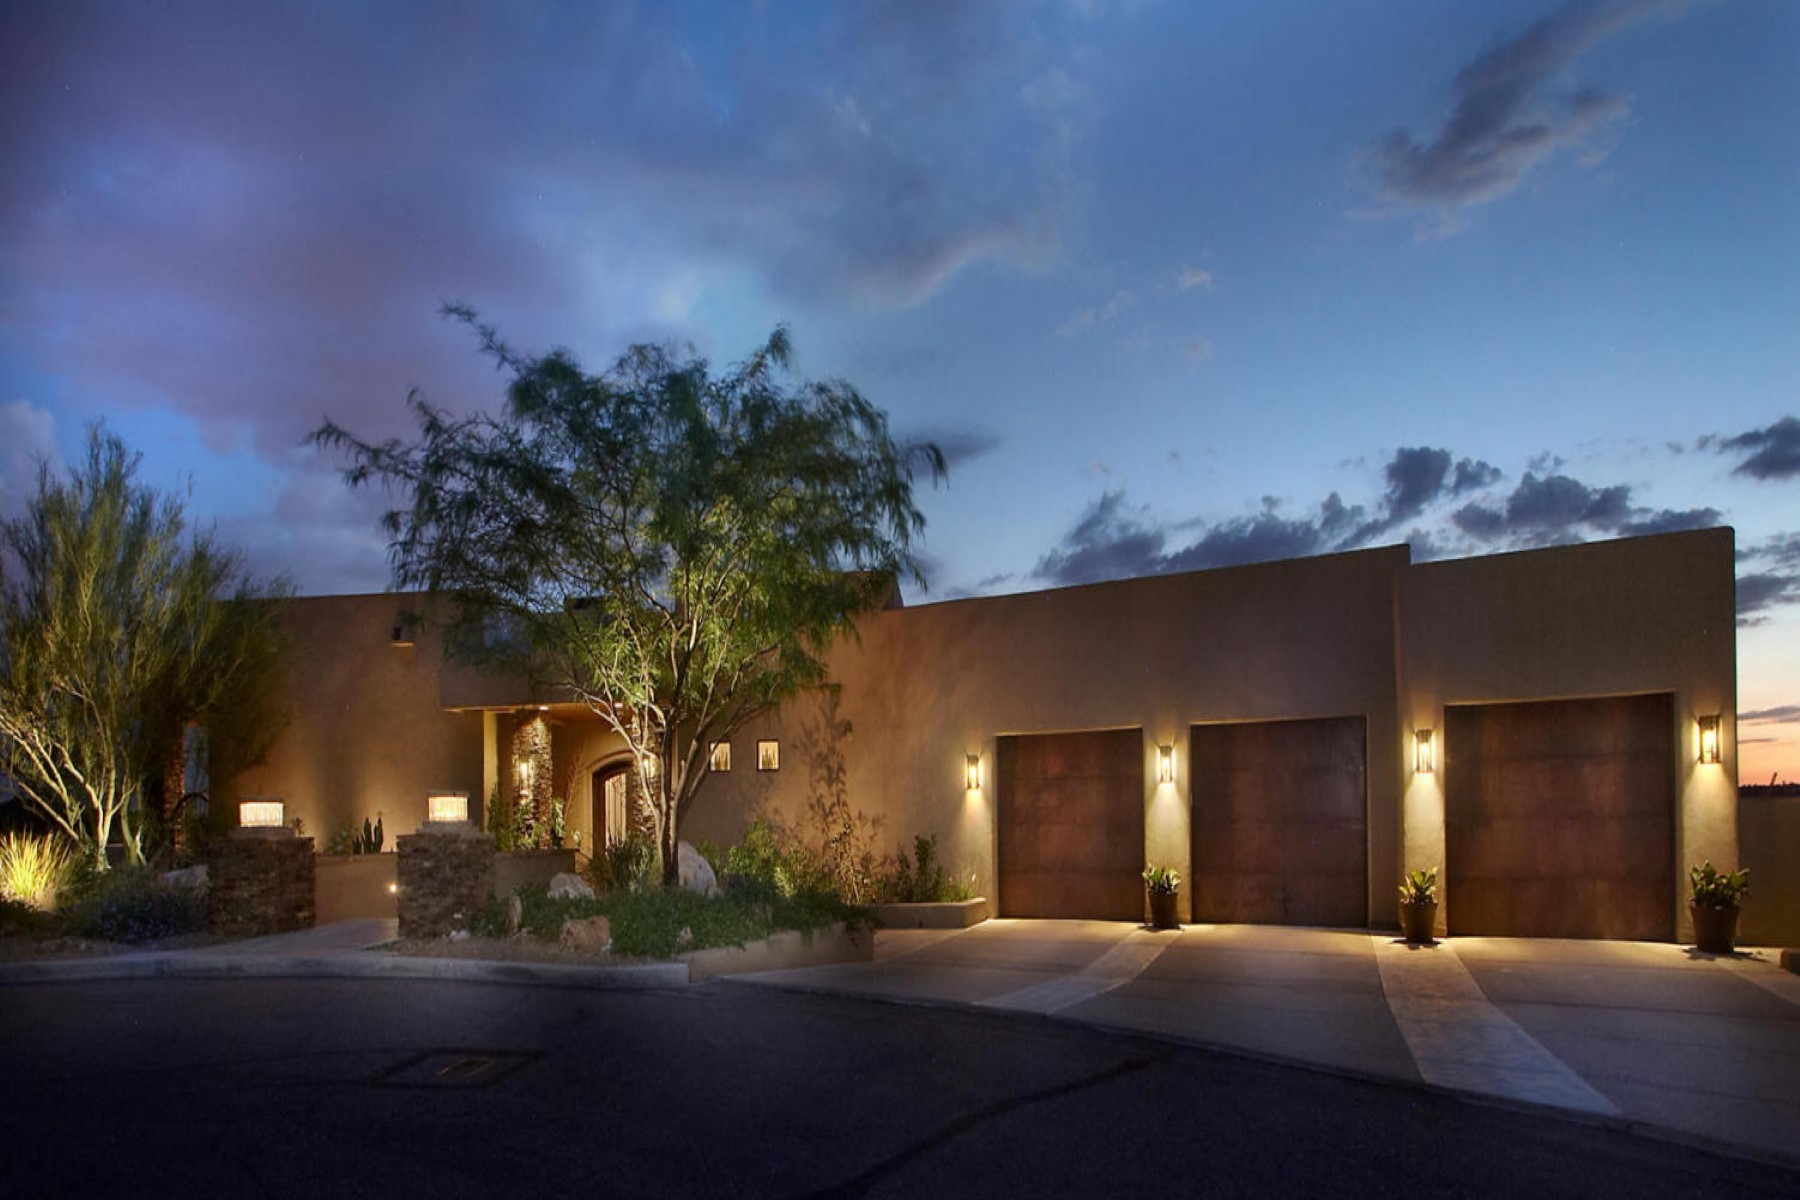 Single Family Home for Sale at Quiet cul-de-sac location with a magnificent entry way. 1612 E Buck Hollow Court Oro Valley, Arizona 85737 United States